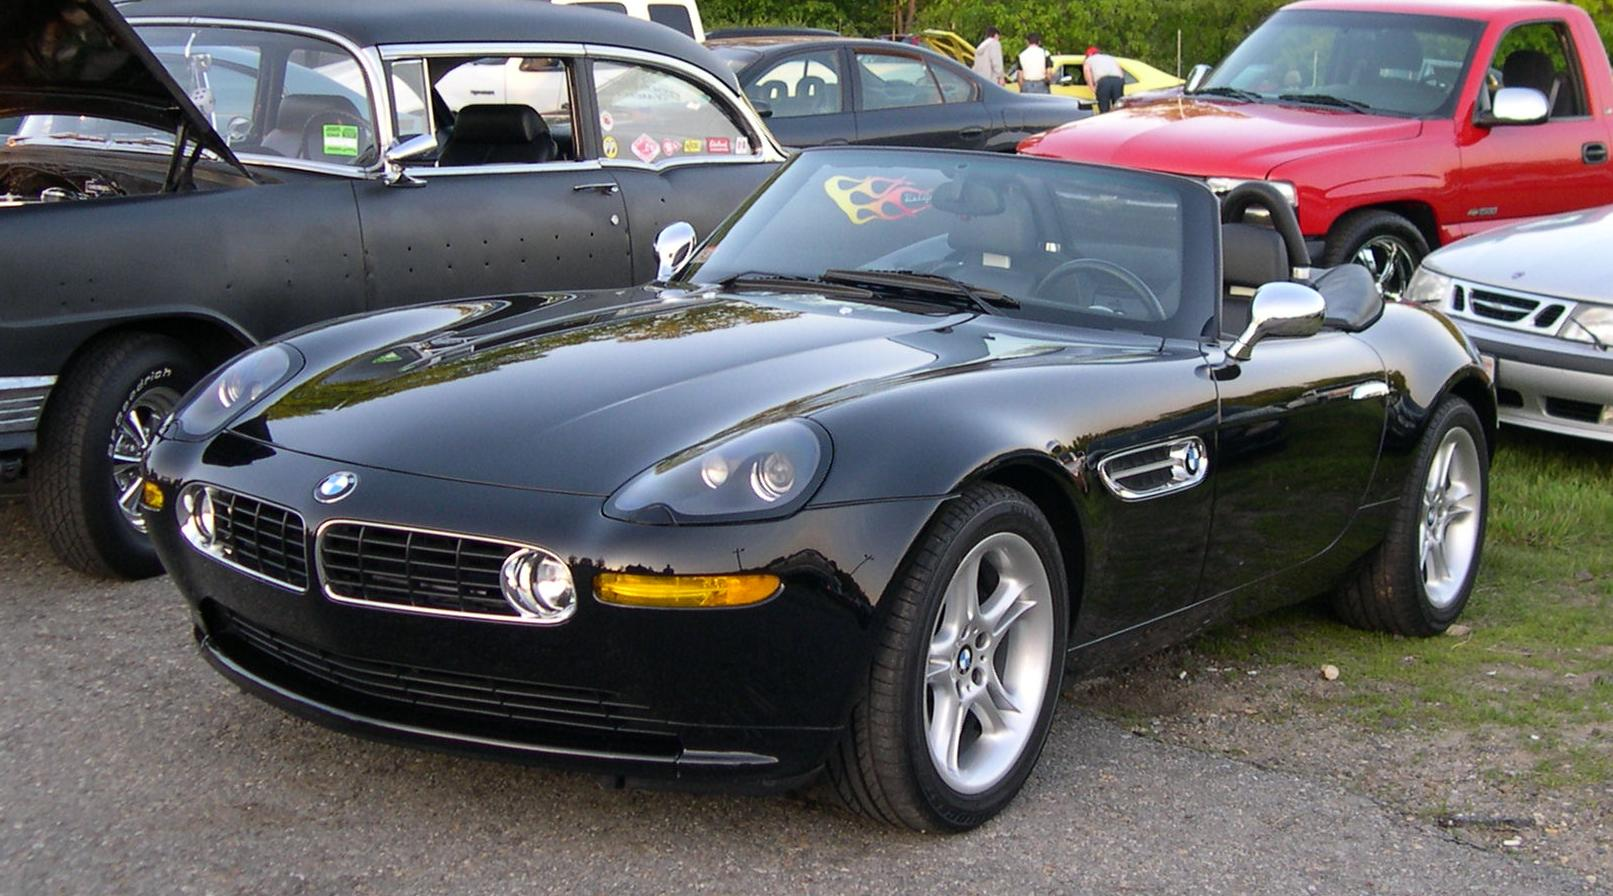 BMW Z8 Wallpaper Backgrounds Free Download Wallpaper